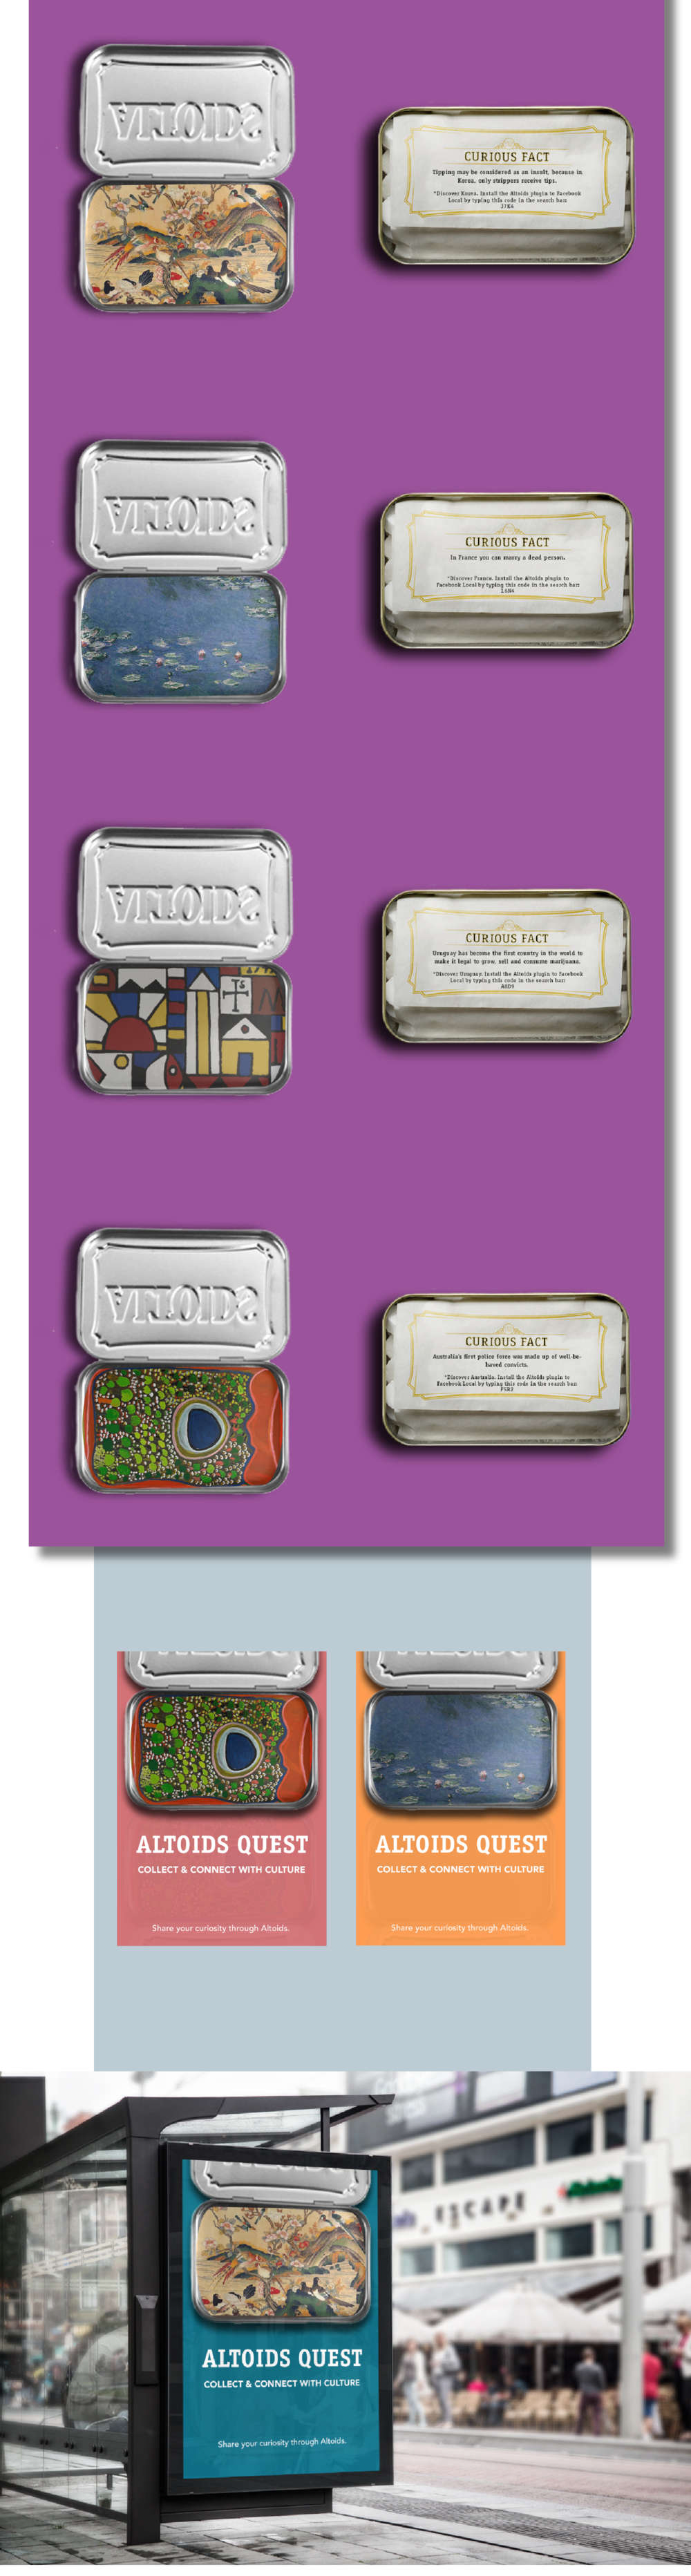 Altoids_Quest_second.png